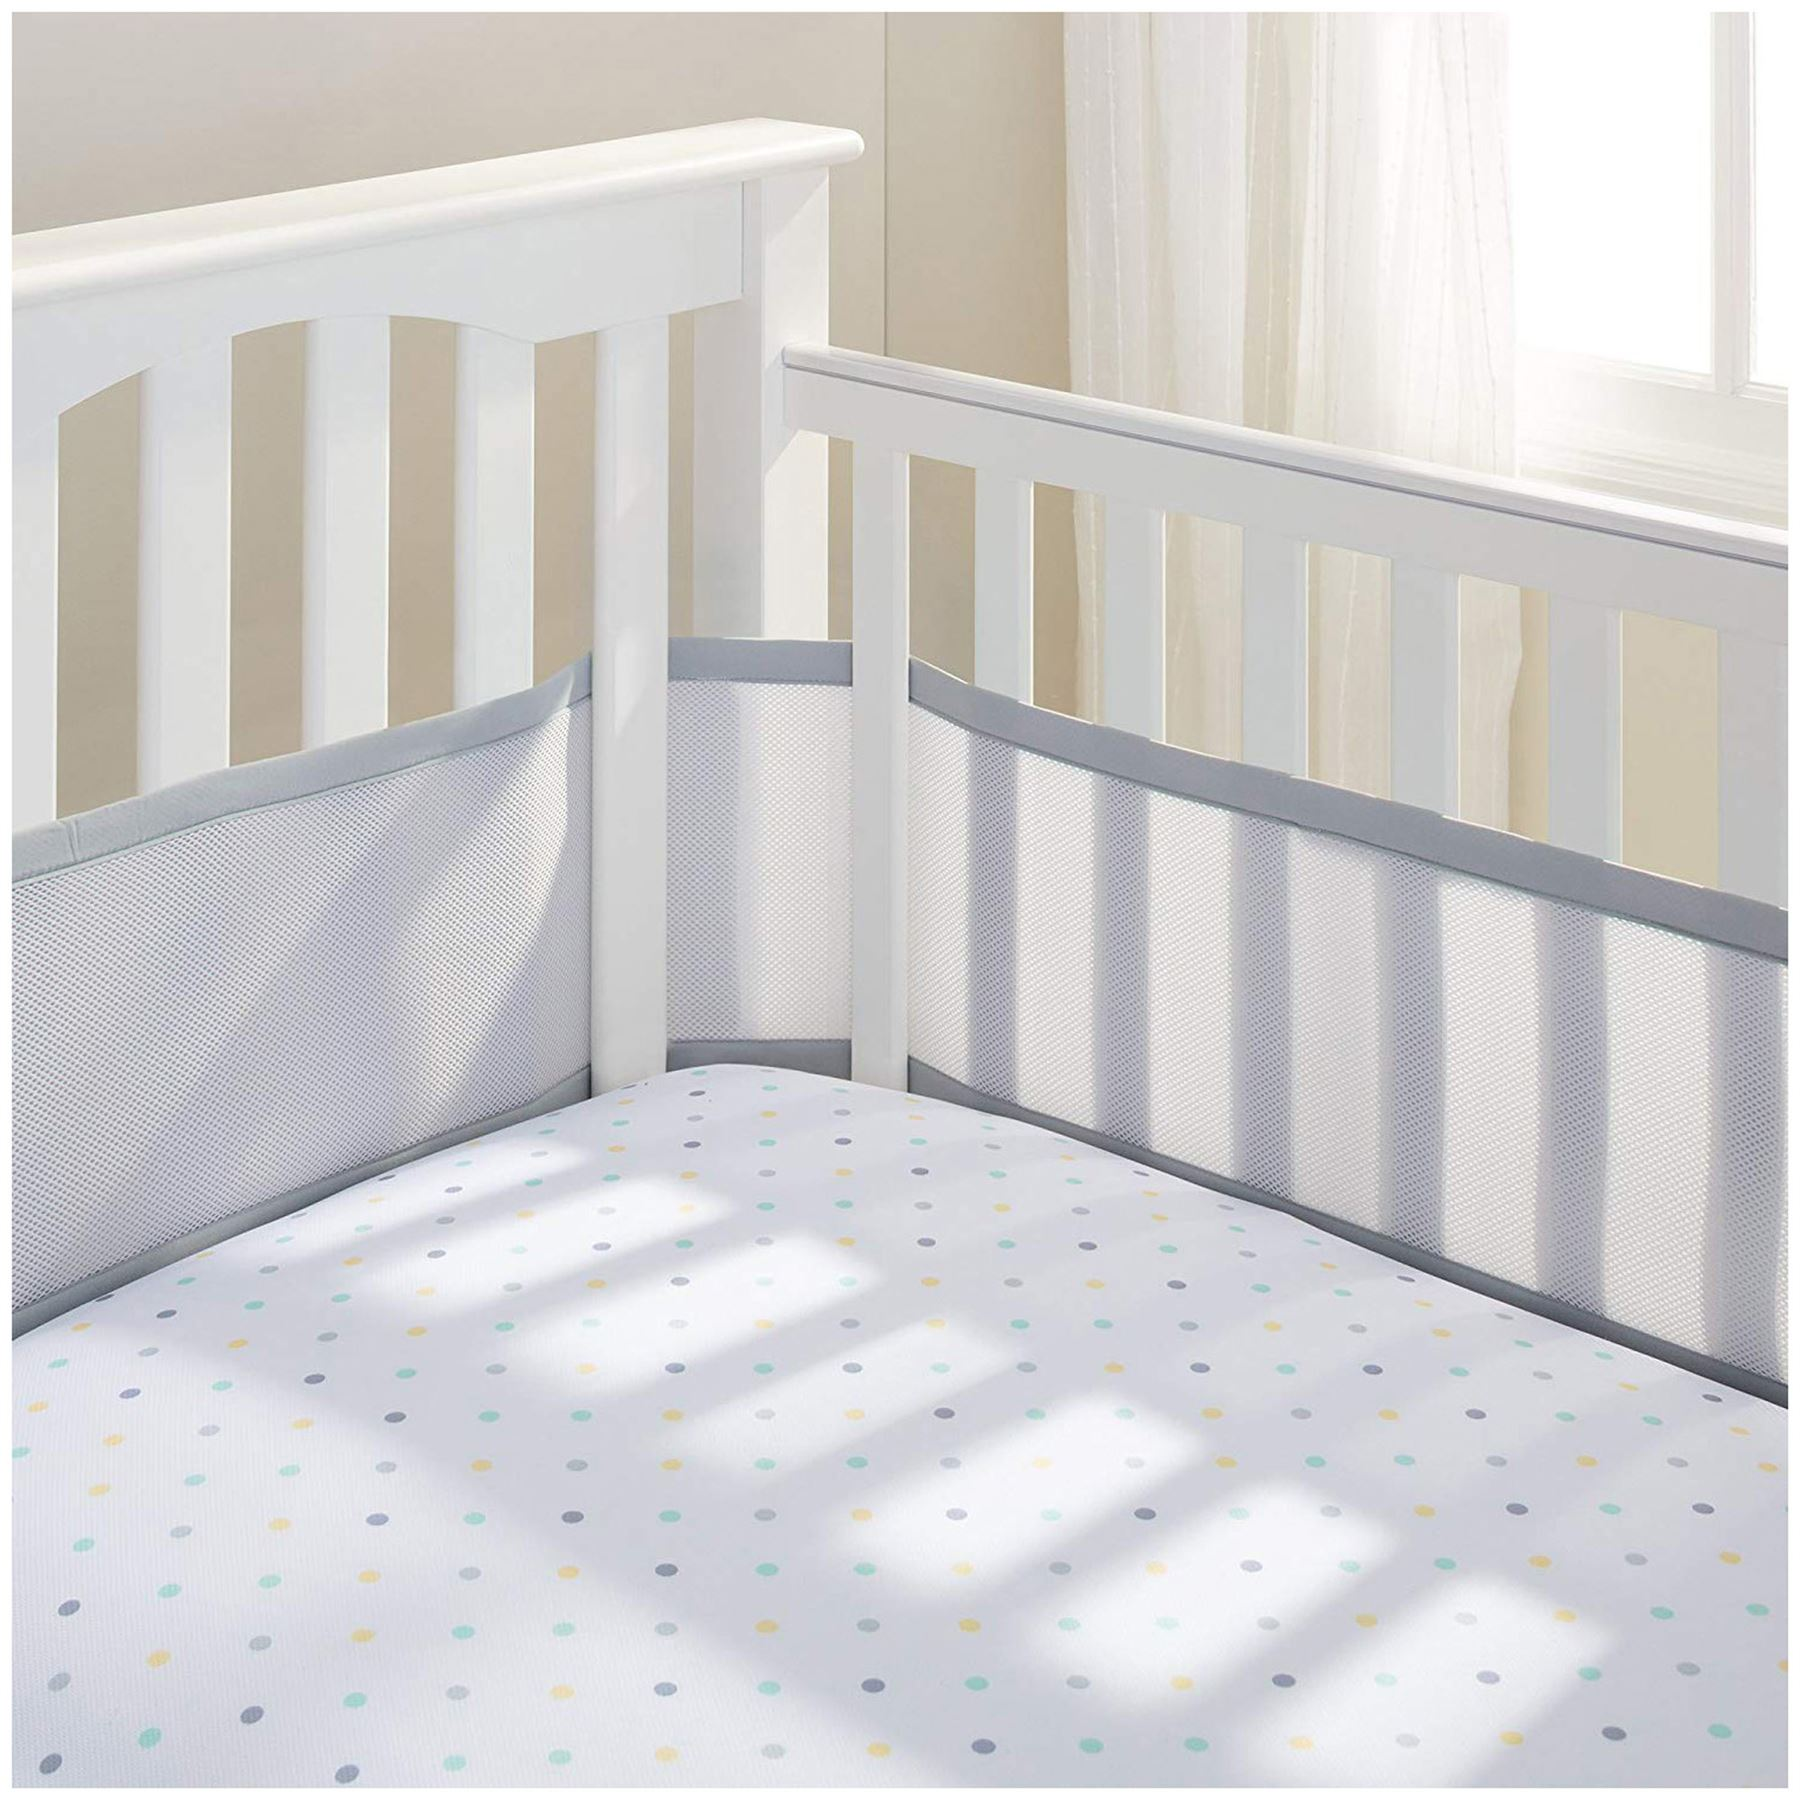 Grey Full Wrap for Cots with Slatted Ends BreathableBaby Mesh Cot Liner